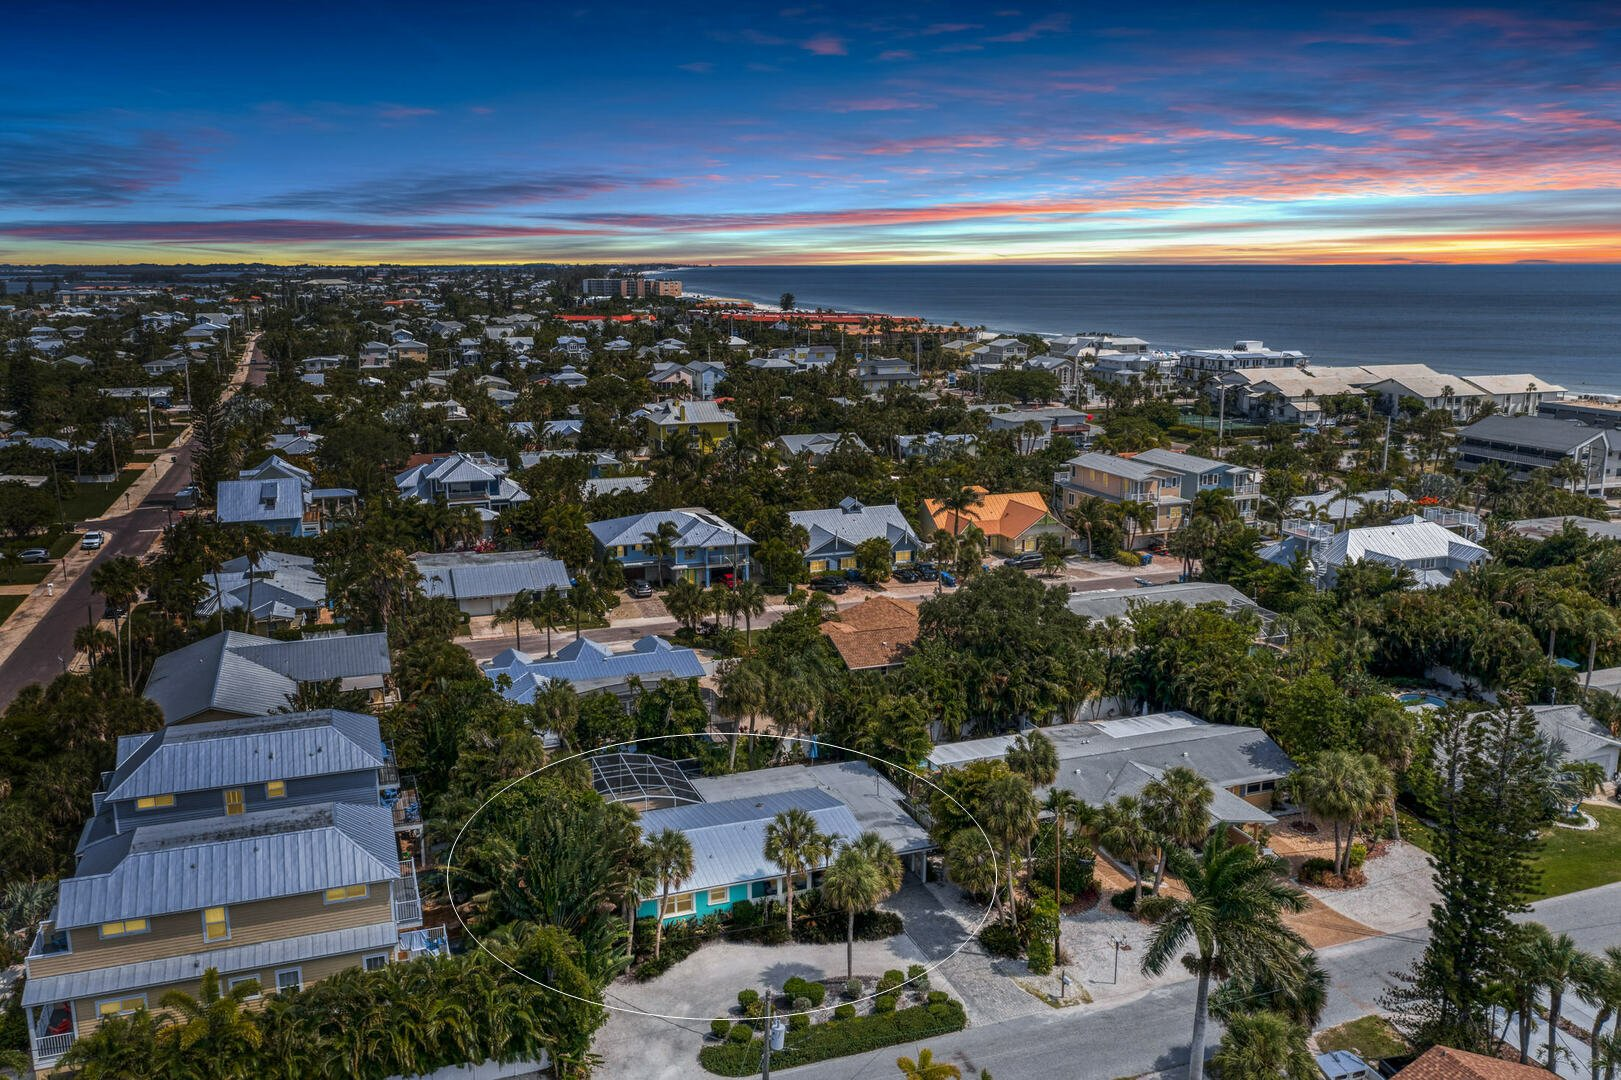 Barefoot Bungalow aerial view from North during sunset